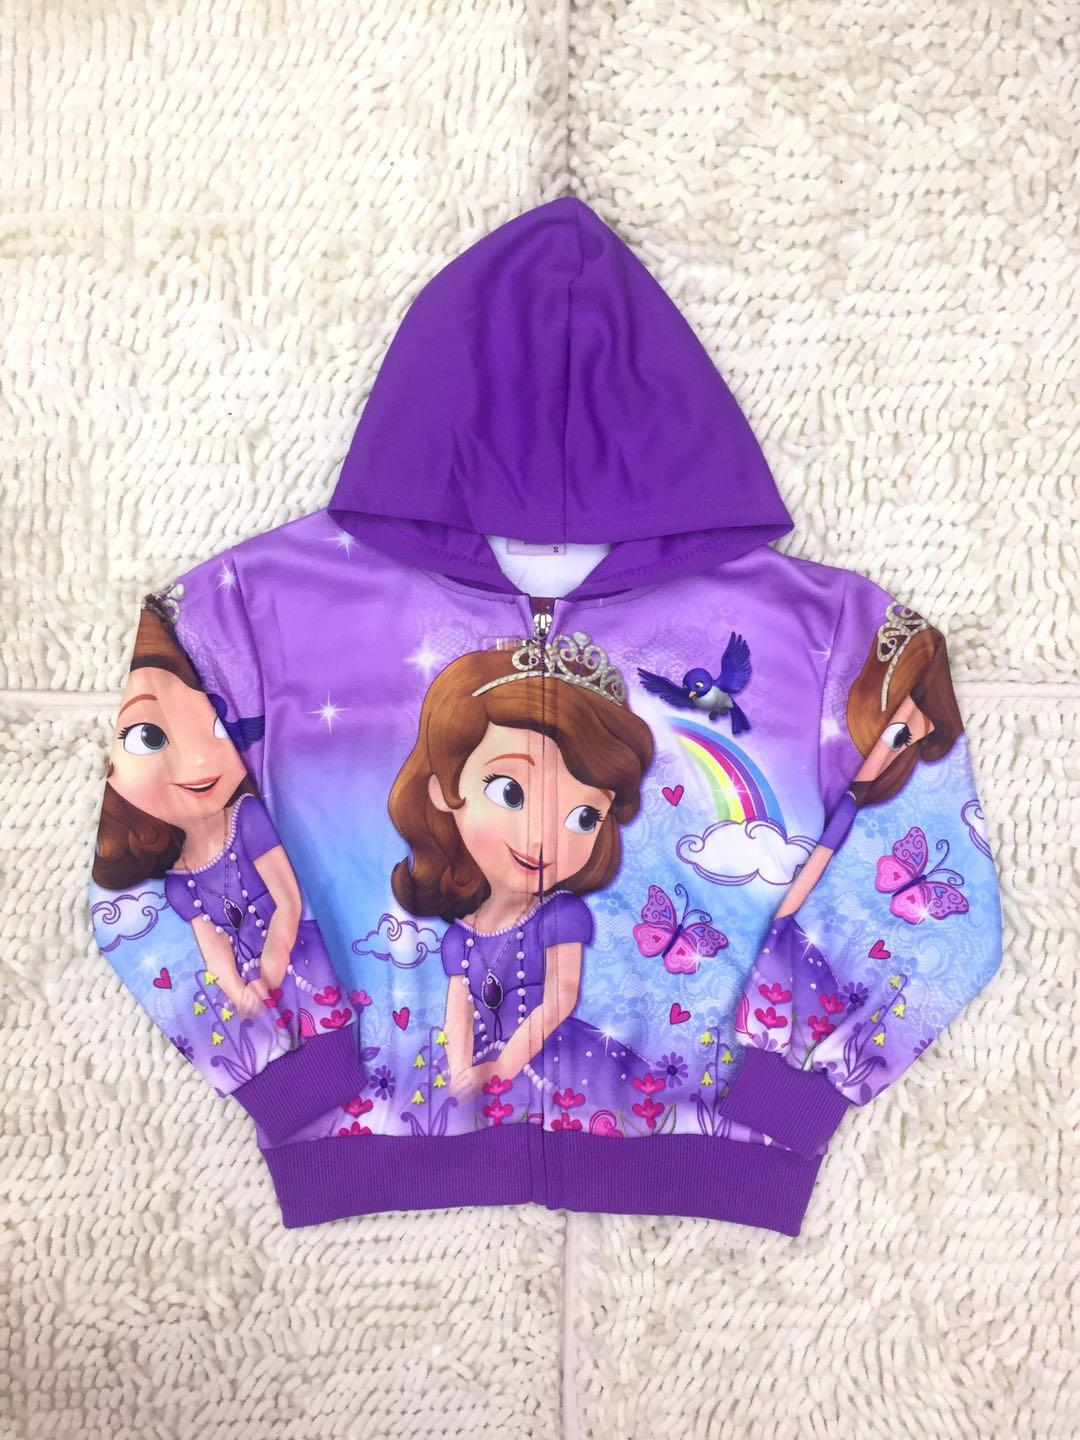 df98e1f221f6 Baby Girl Jackets for sale - Jackets for Baby Girls online brands ...